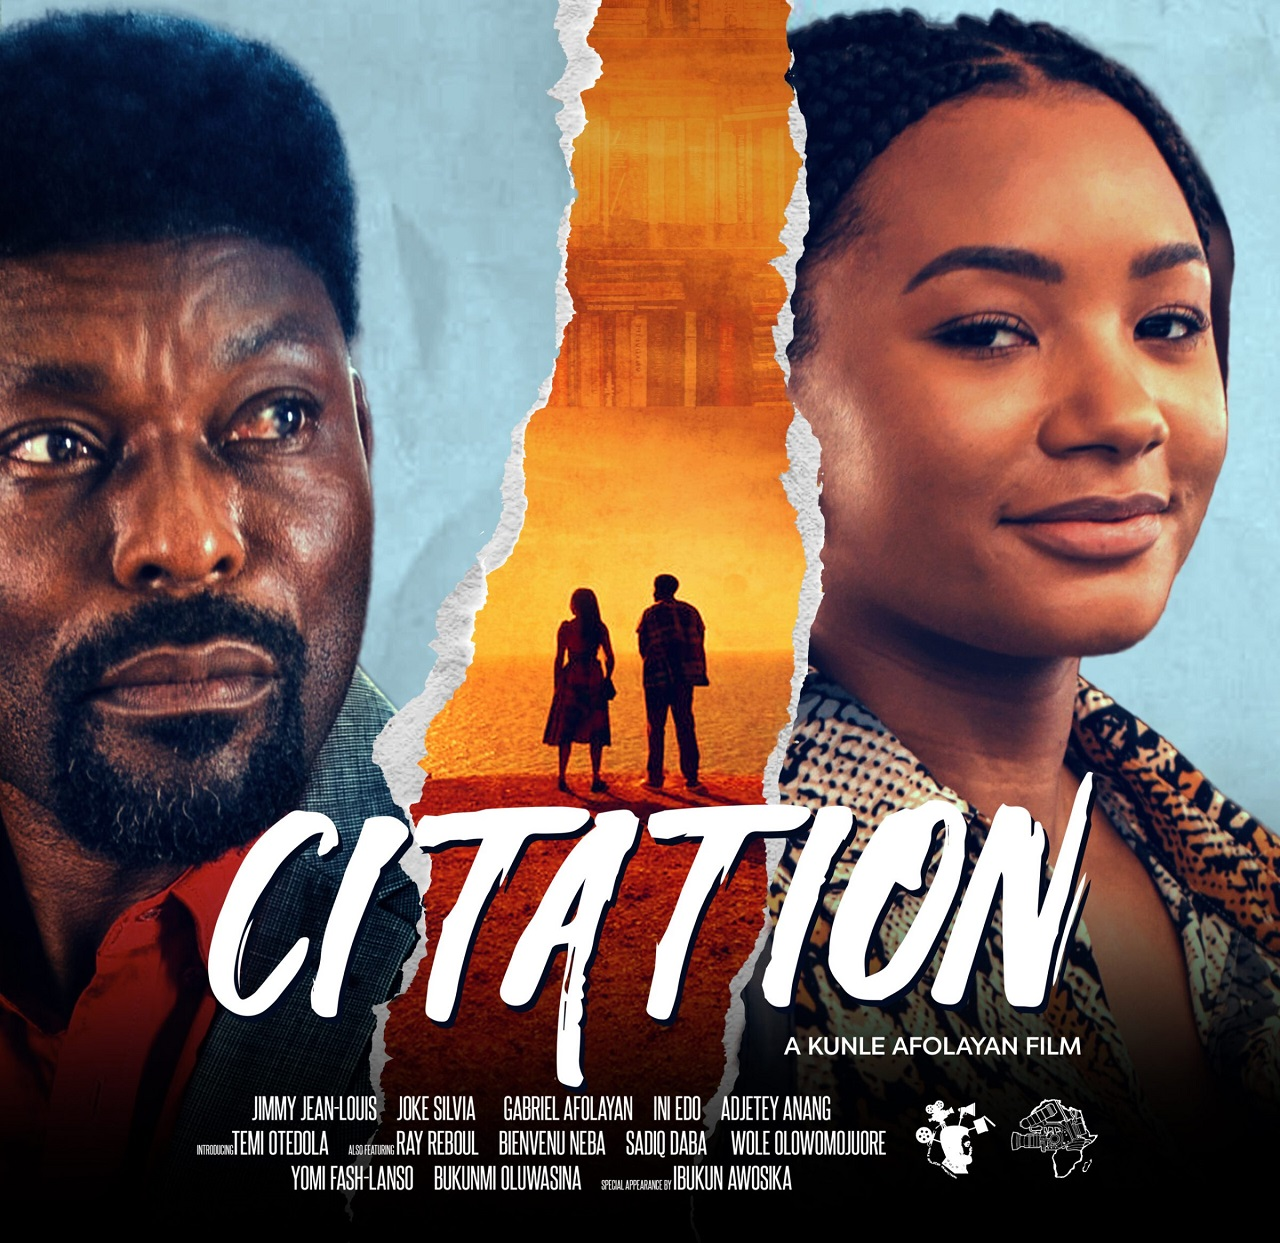 """Watch: Temi Otedola In Teaser For Kunle Afolayan's New Film """"Citation""""   The Guardian Nigeria News - Nigeria and World NewsGuardian Life — The Guardian Nigeria News – Nigeria and World News"""